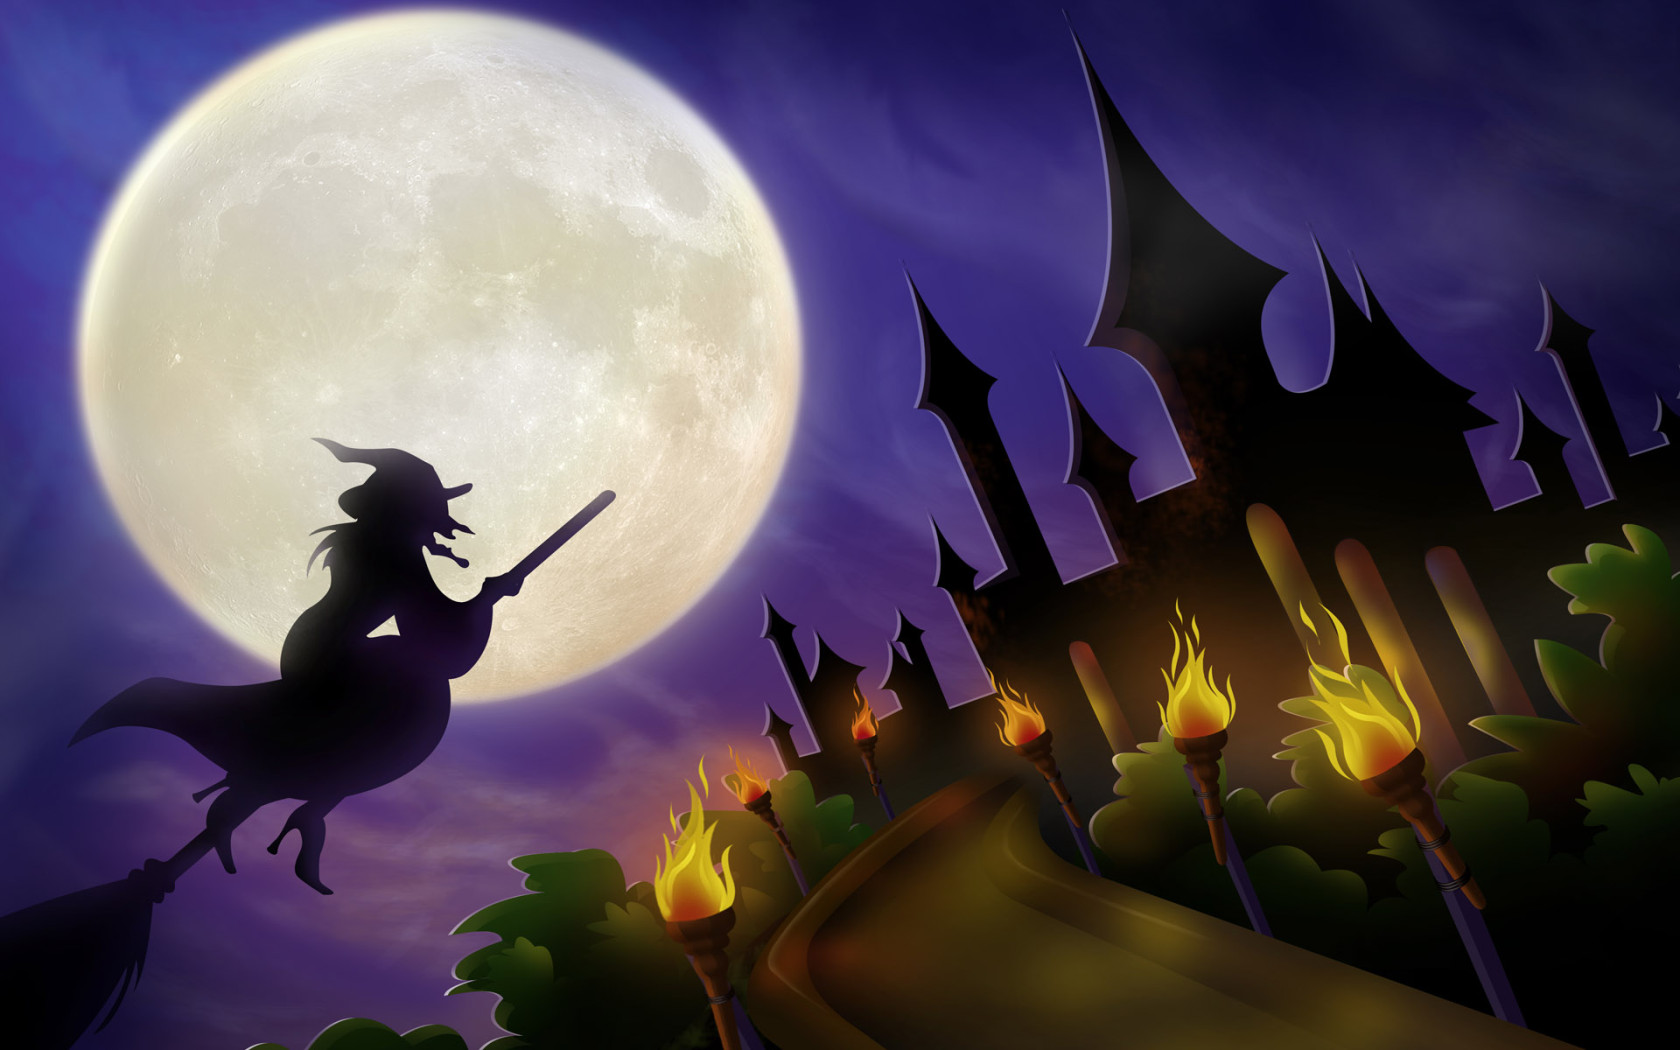 Castle witches Halloween Desktop wallpapers 1680x1050 1680x1050